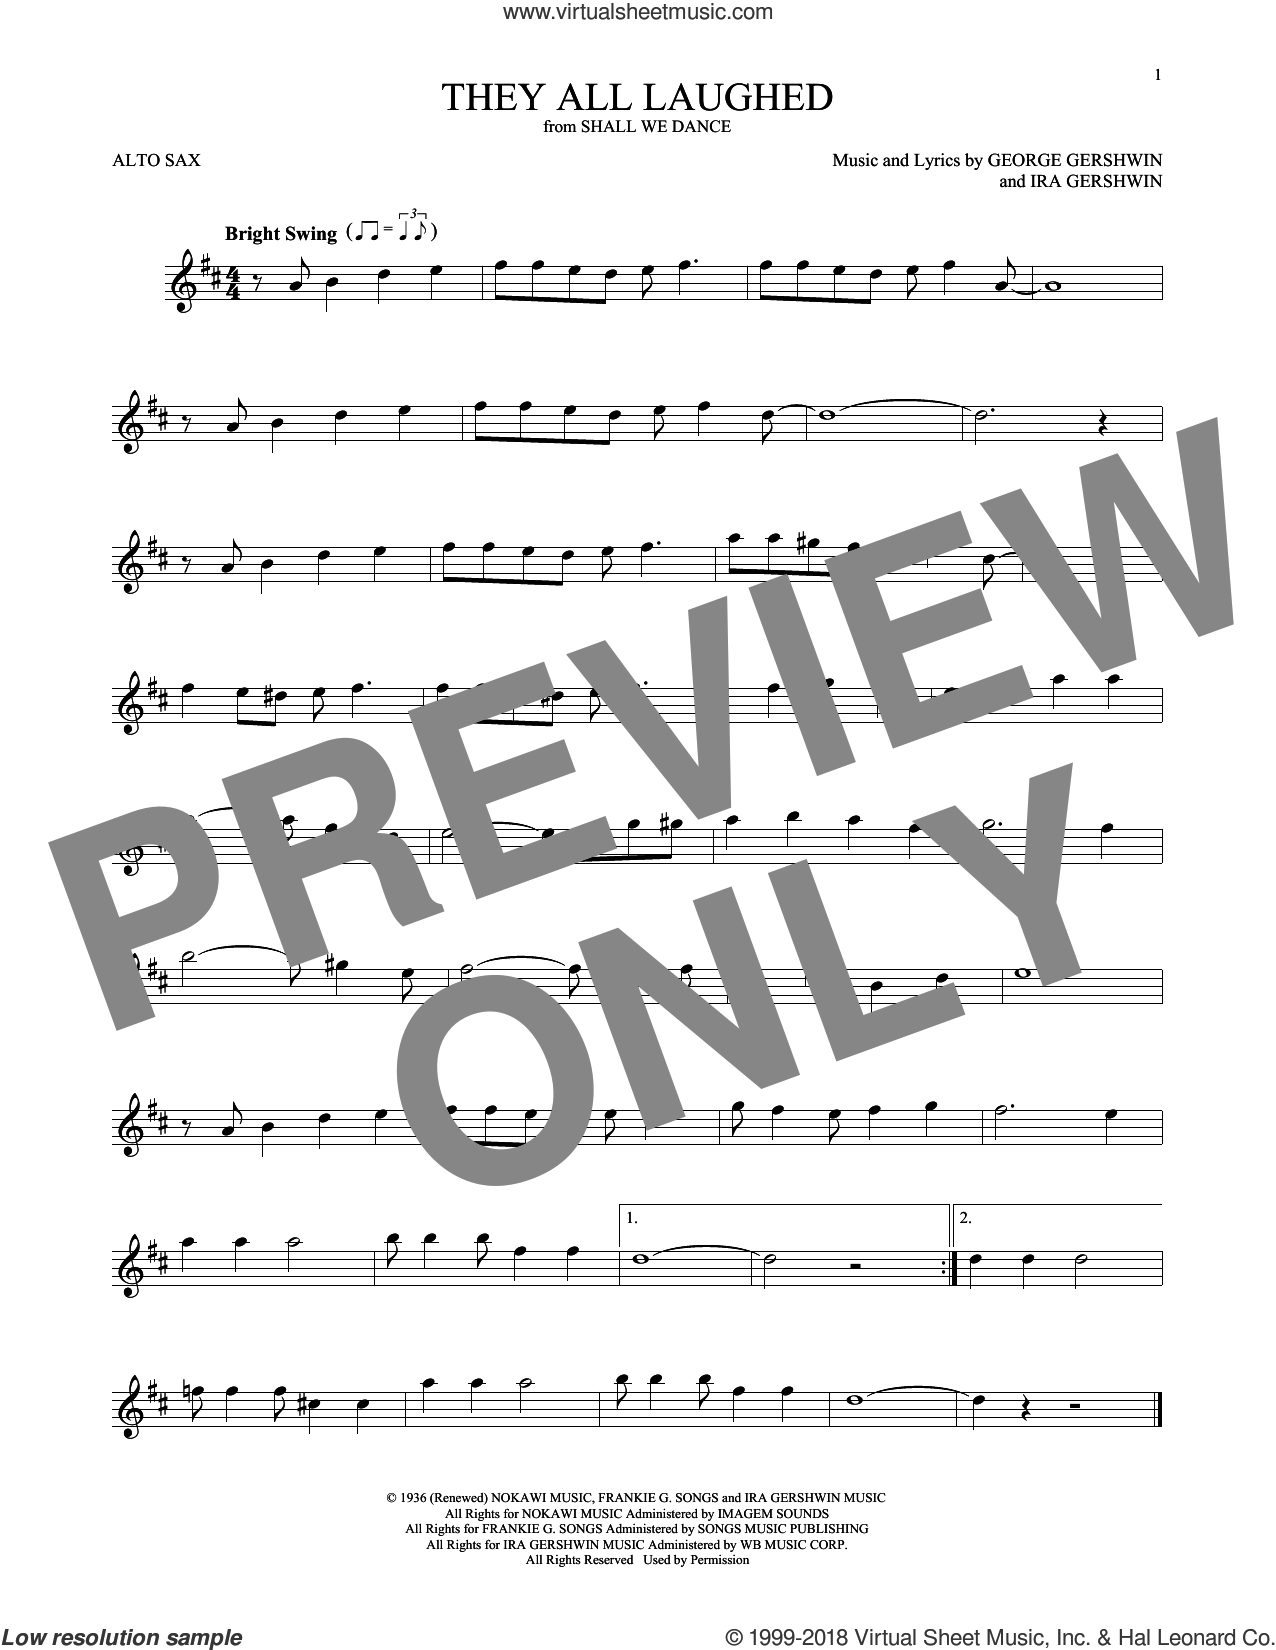 They All Laughed sheet music for alto saxophone solo by Frank Sinatra, George Gershwin and Ira Gershwin, intermediate skill level